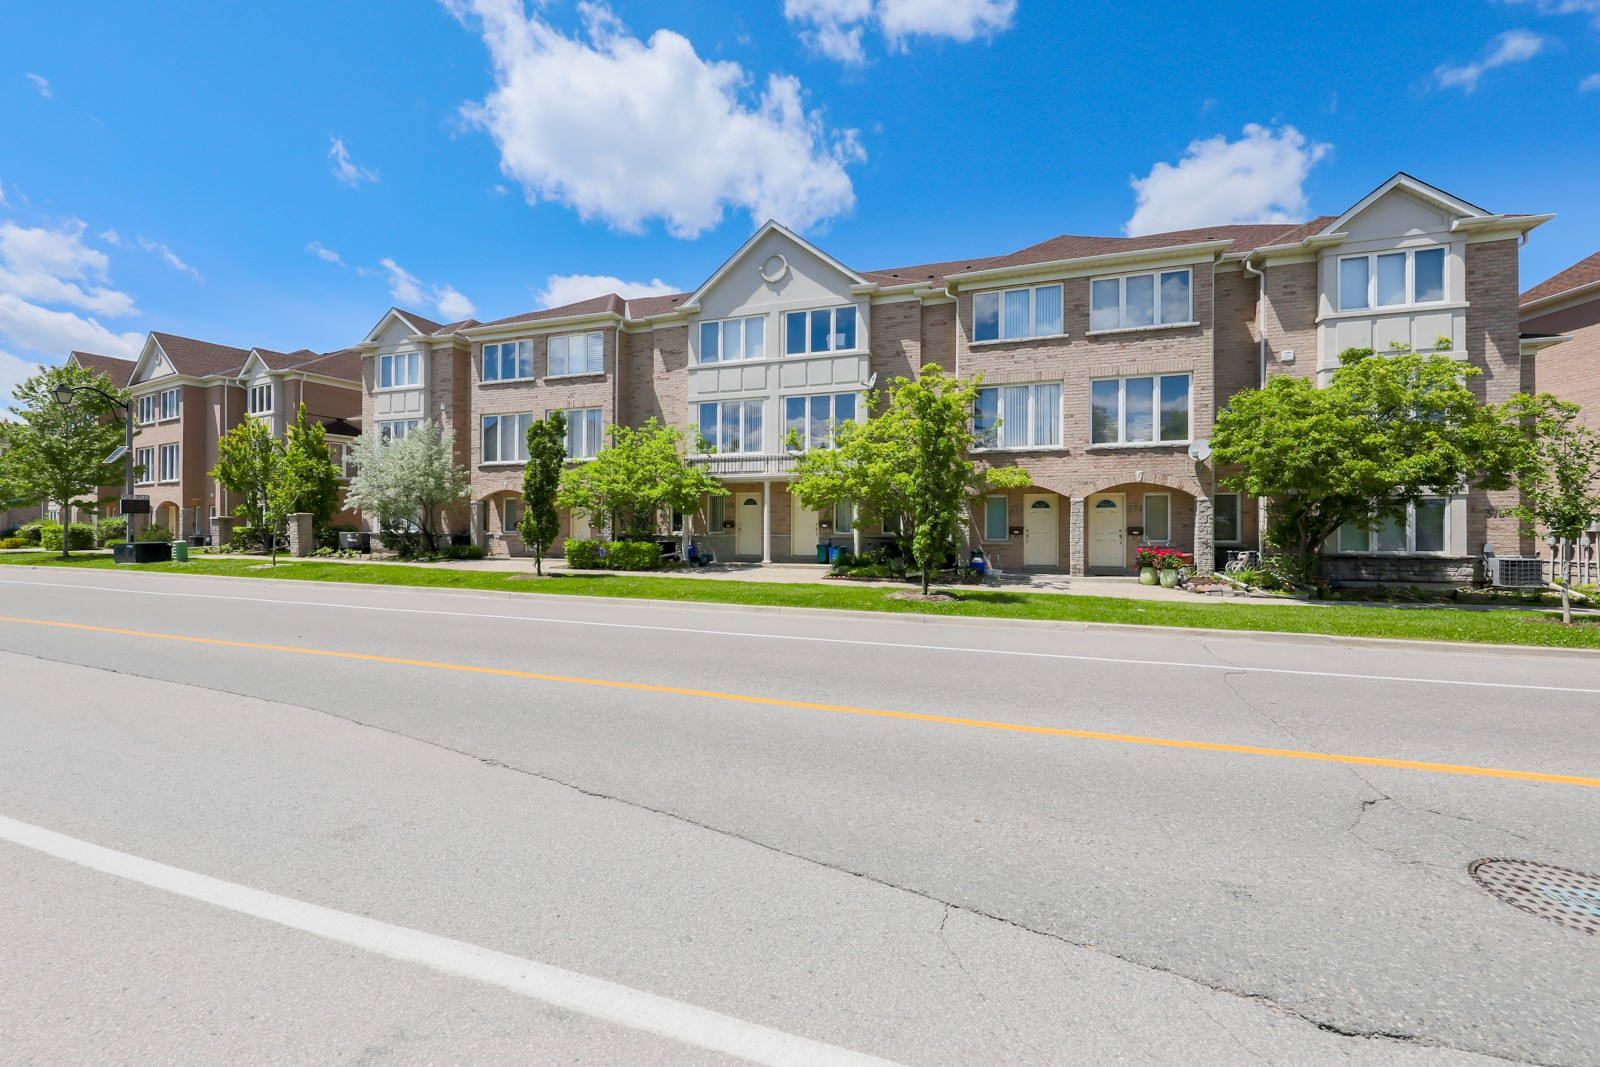 368 South Park Rd Townhouses at 30 Leitchcroft Crescent, Markham 0